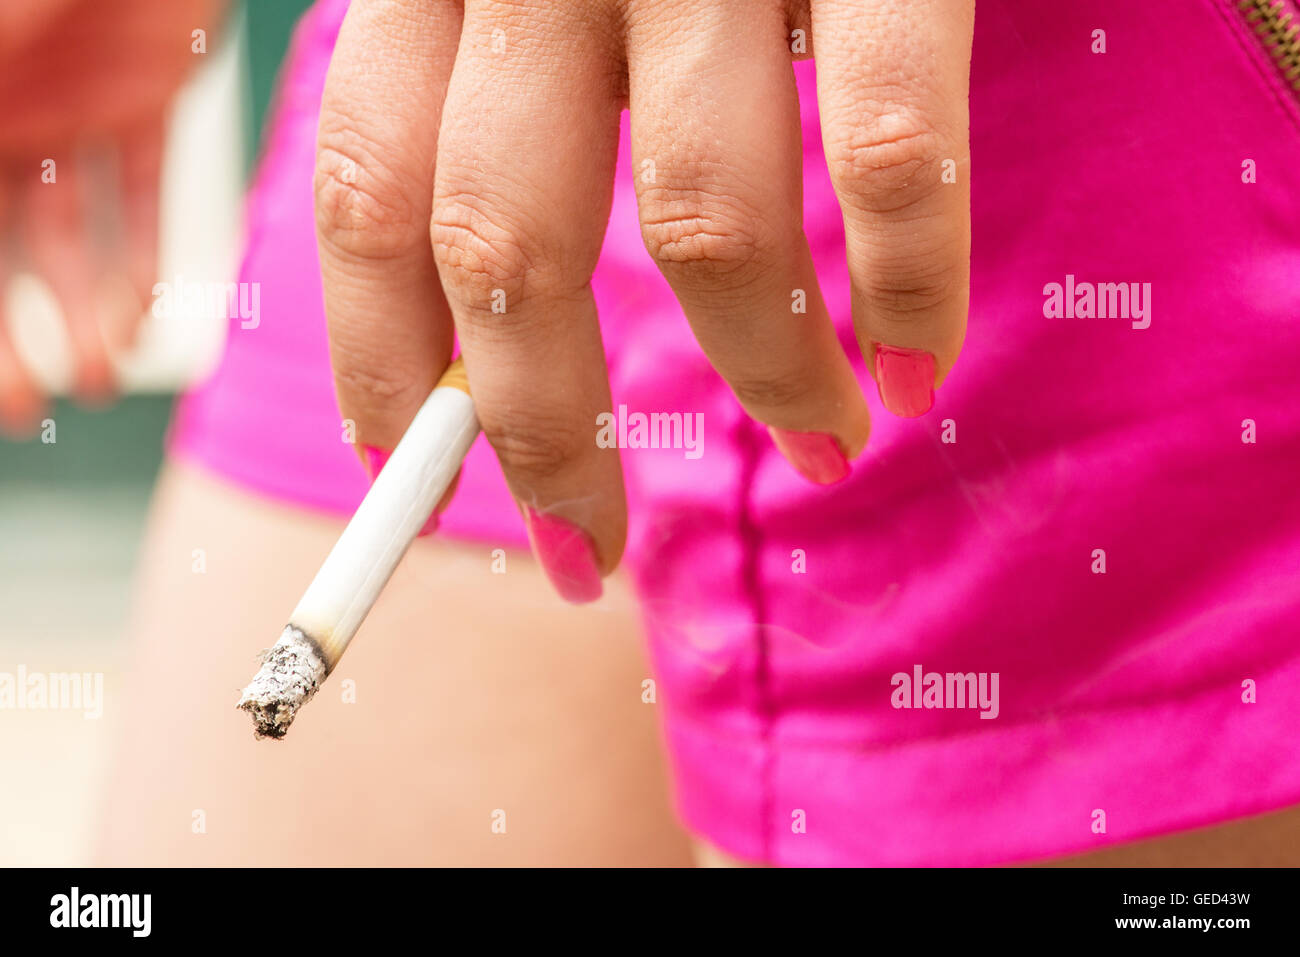 A woman holding a cigarette in her hand - Stock Image